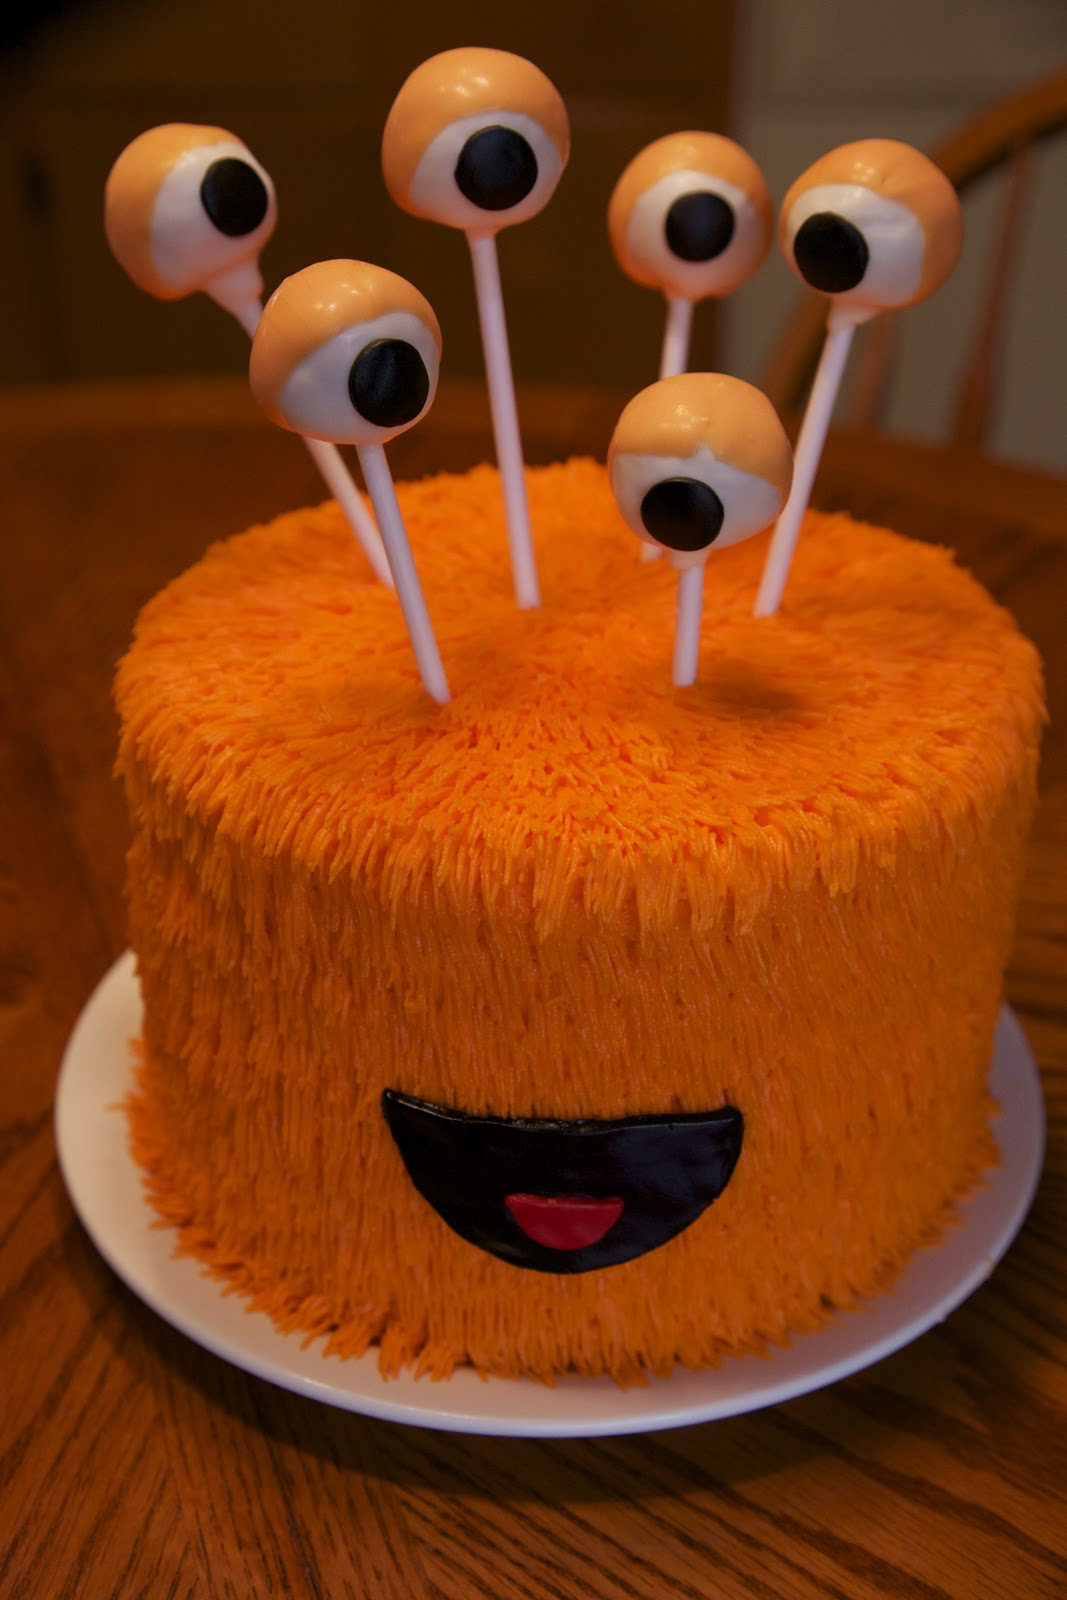 The Best Cake Designs In The World